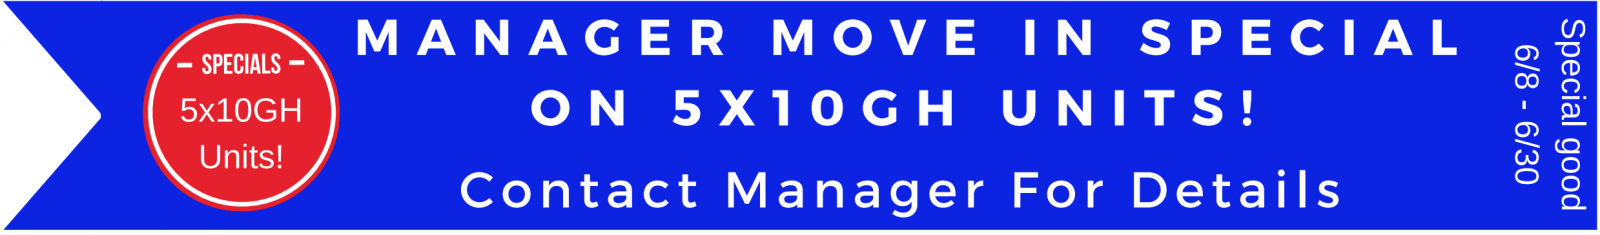 Manager Move In Special on 5x10GH Units - Contact manager for details